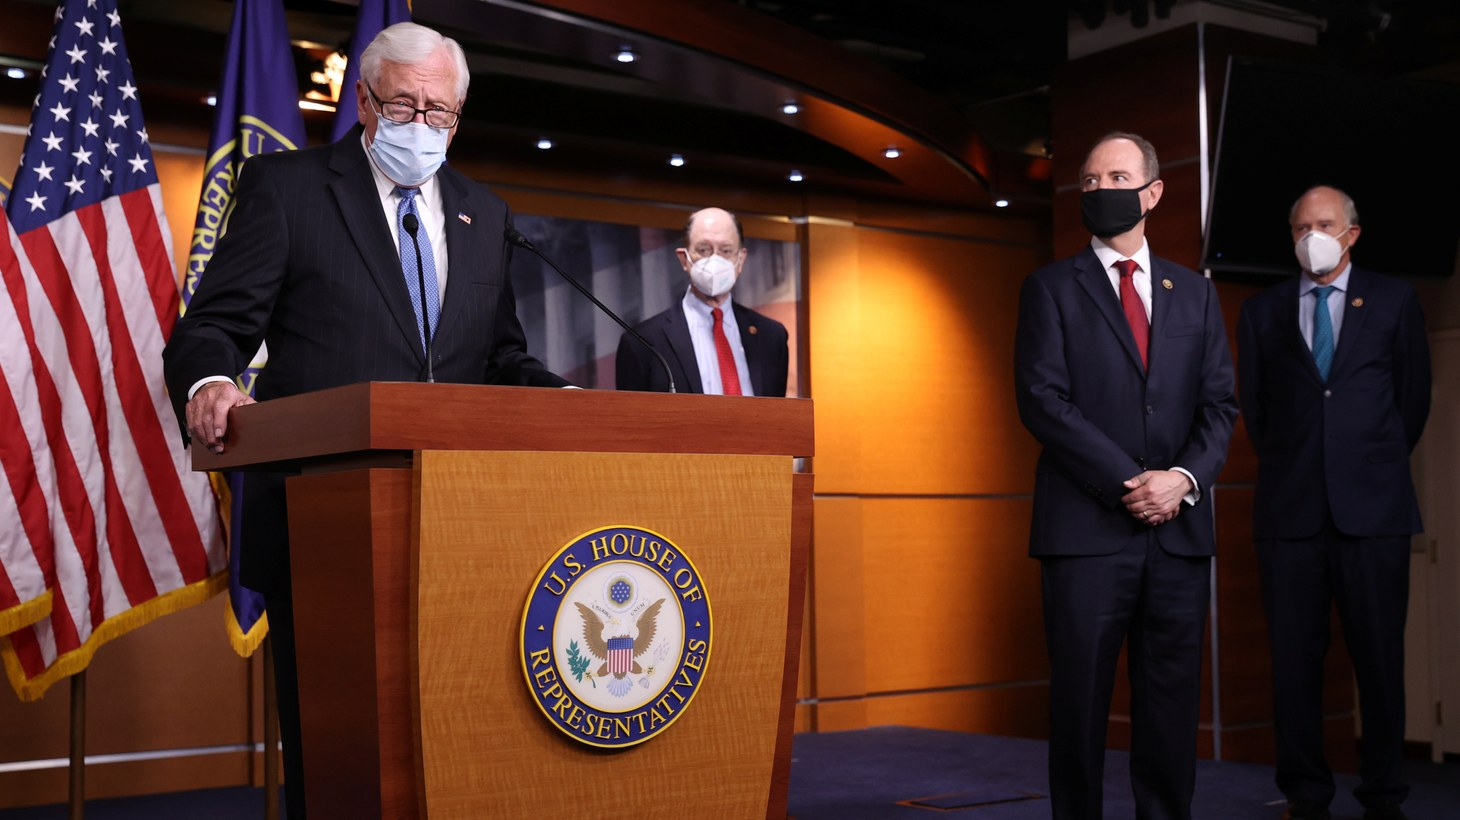 U.S. House Majority Leader Steny Hoyer (D-MD) speaks to reporters as House Democrats respond to a White House briefing on reports Russia paid the Taliban bounties to kill U.S. troops during a news conference in Washington, U.S., June 30, 2020.